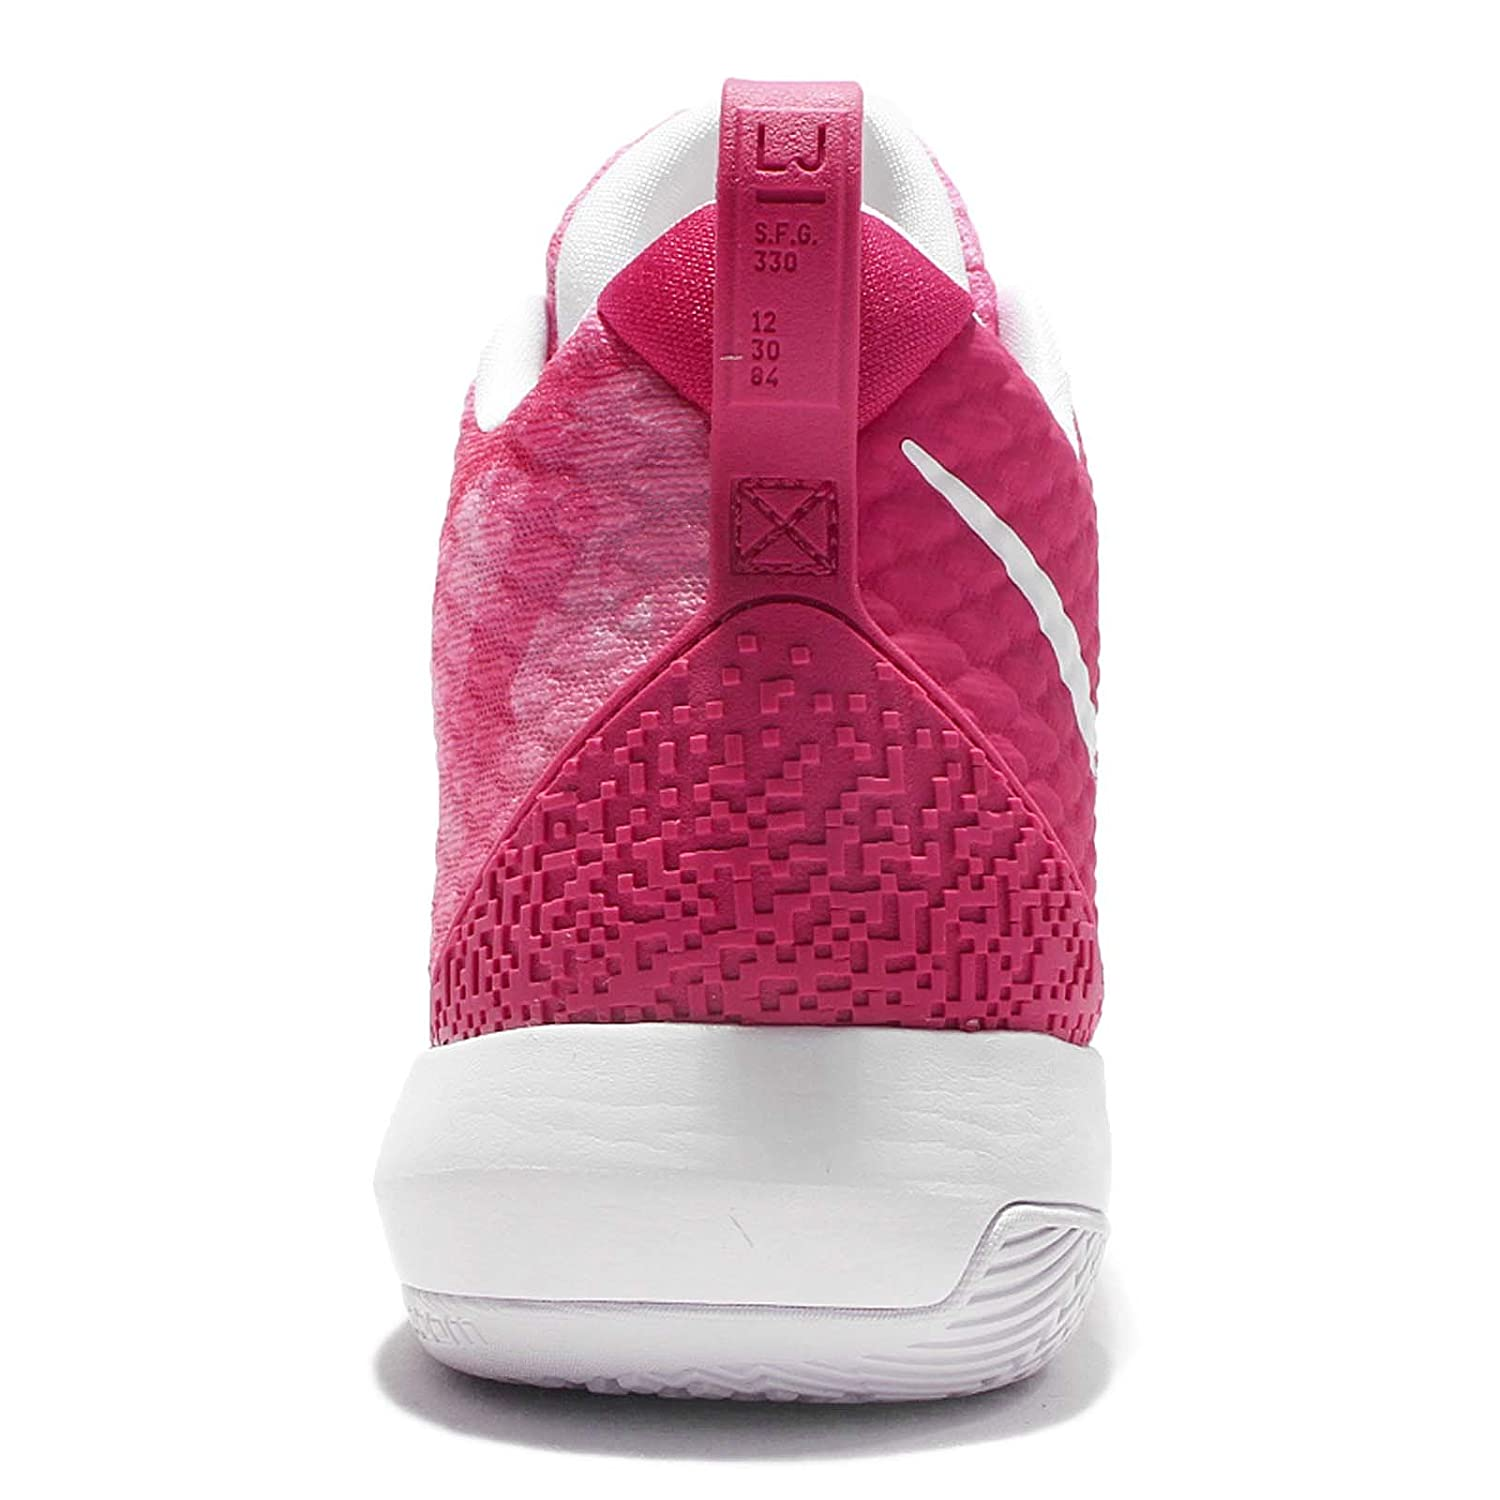 Nike Men's Ambassador IX, VIVID PINK/BLACK-PINK BLAST, 12.5 M US:  Amazon.ca: Shoes & Handbags